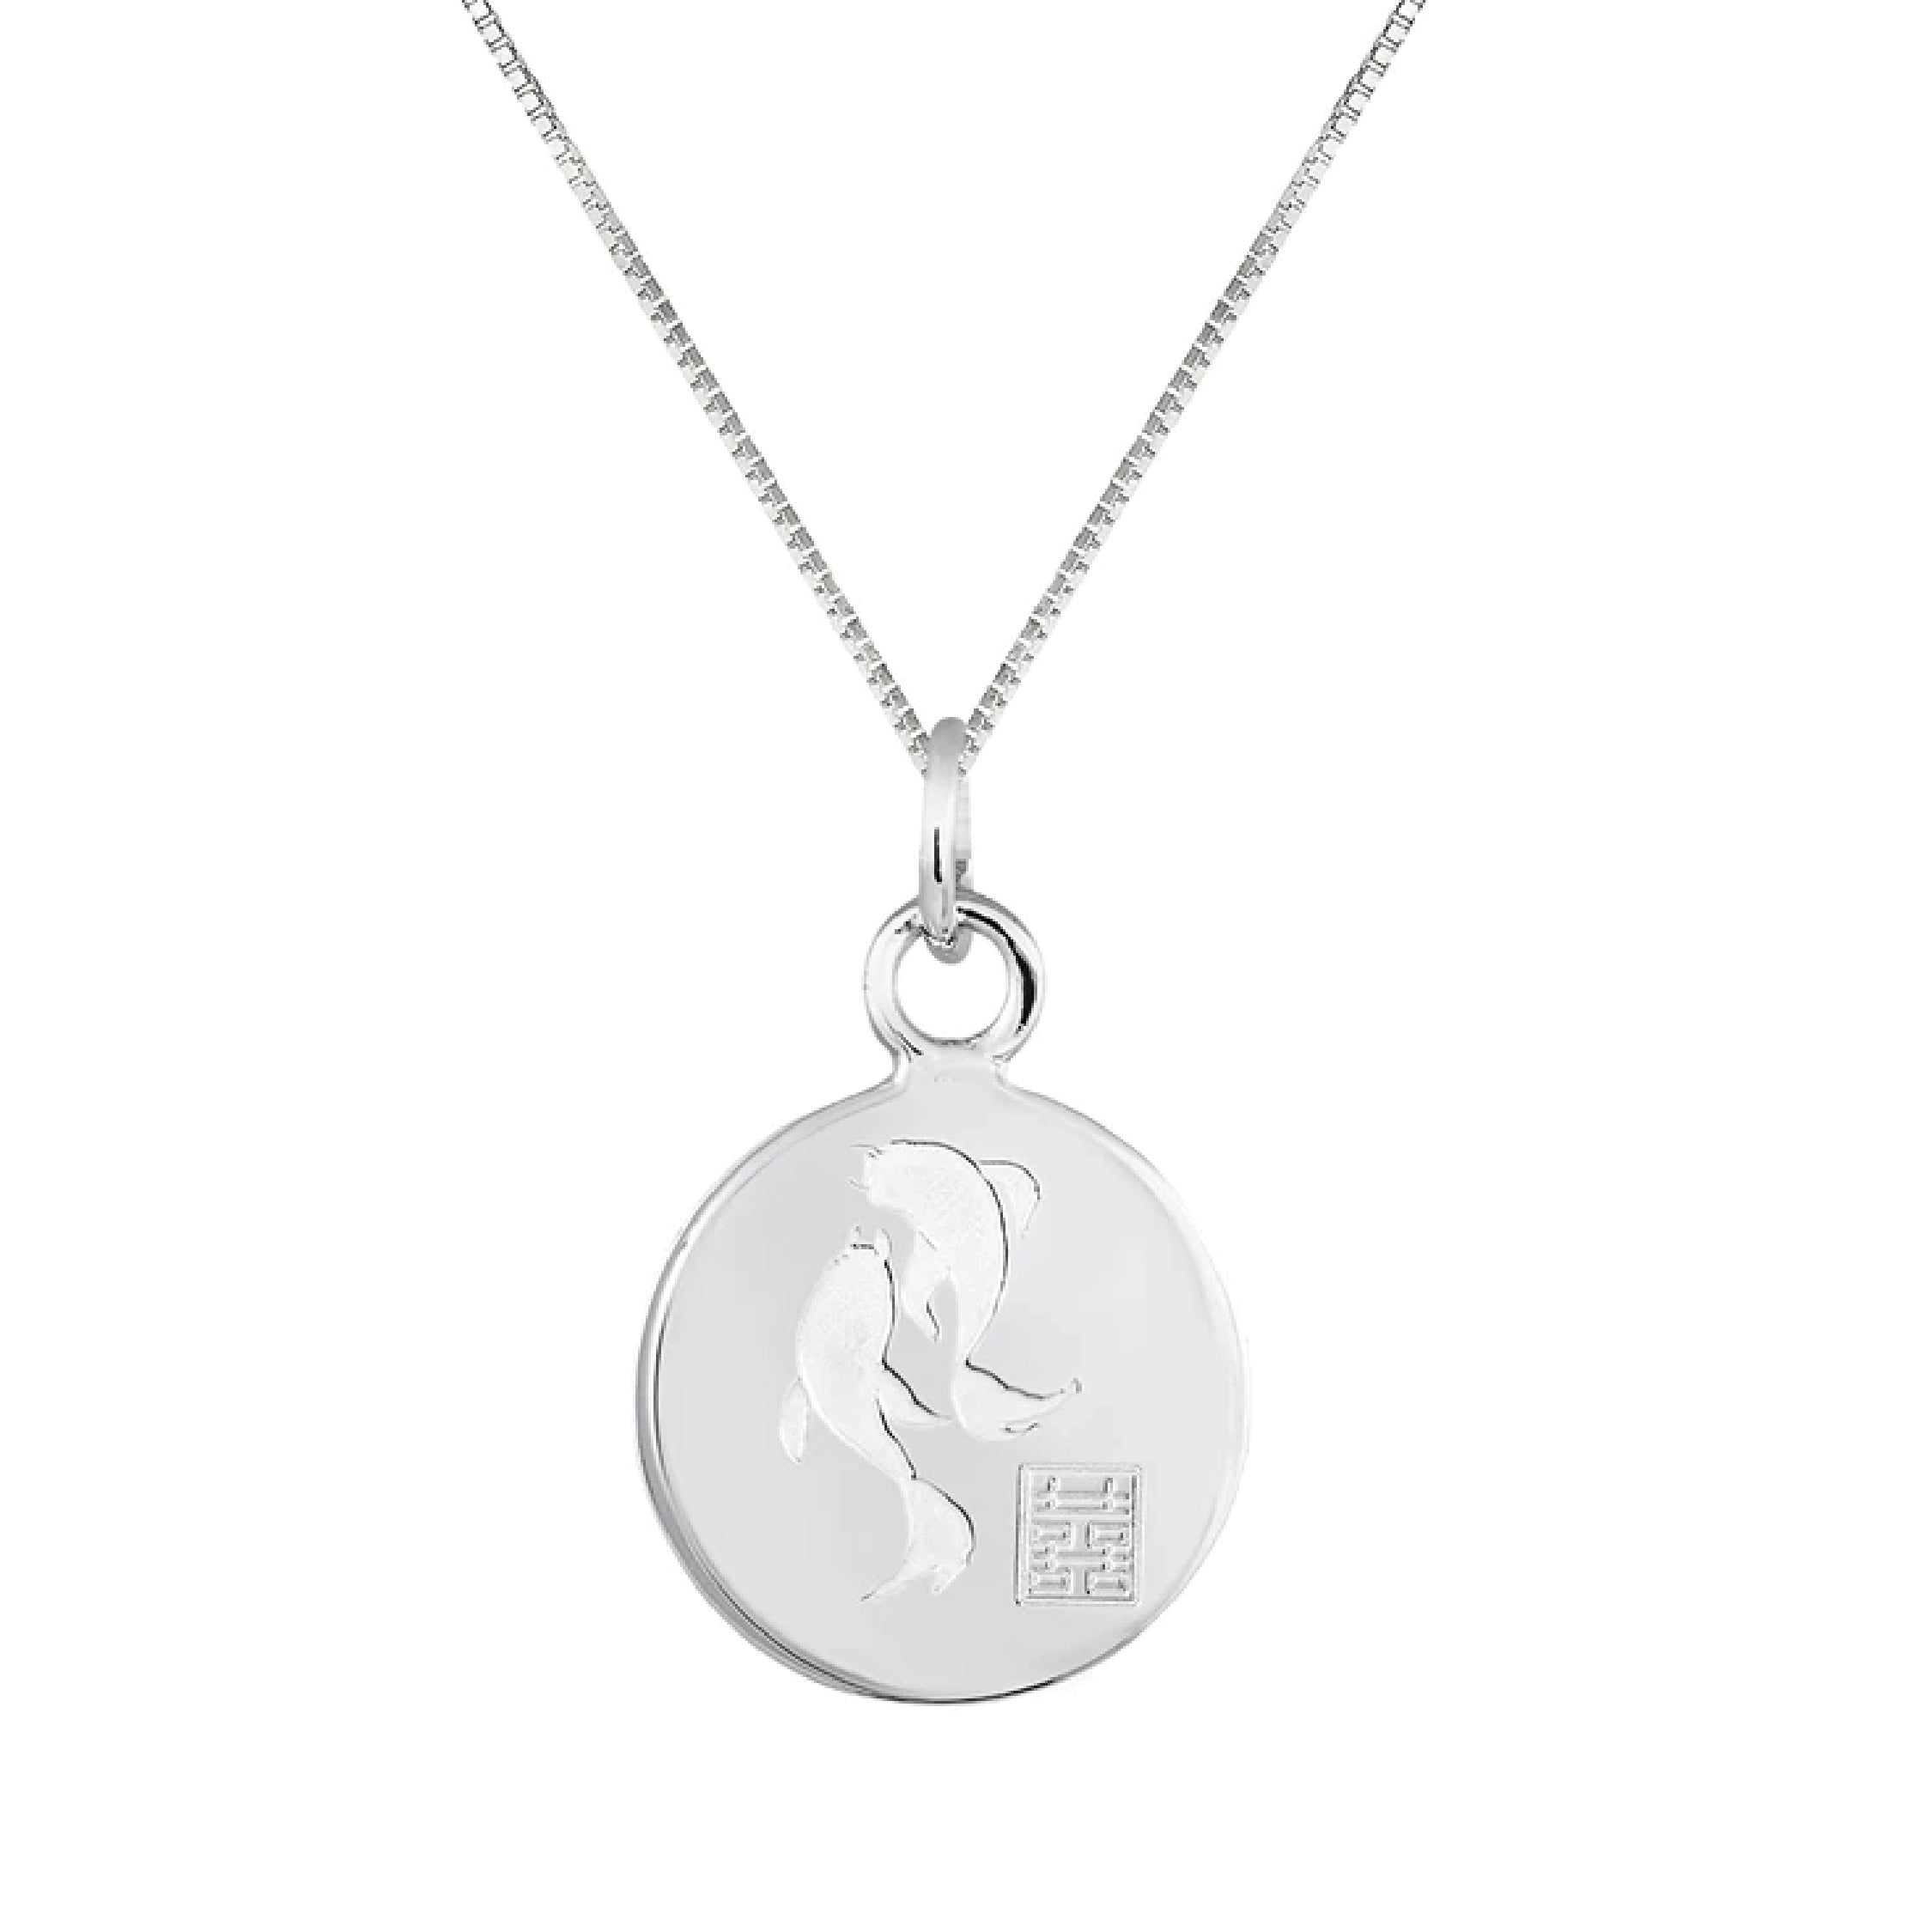 Blessings Koi Fish Pendant